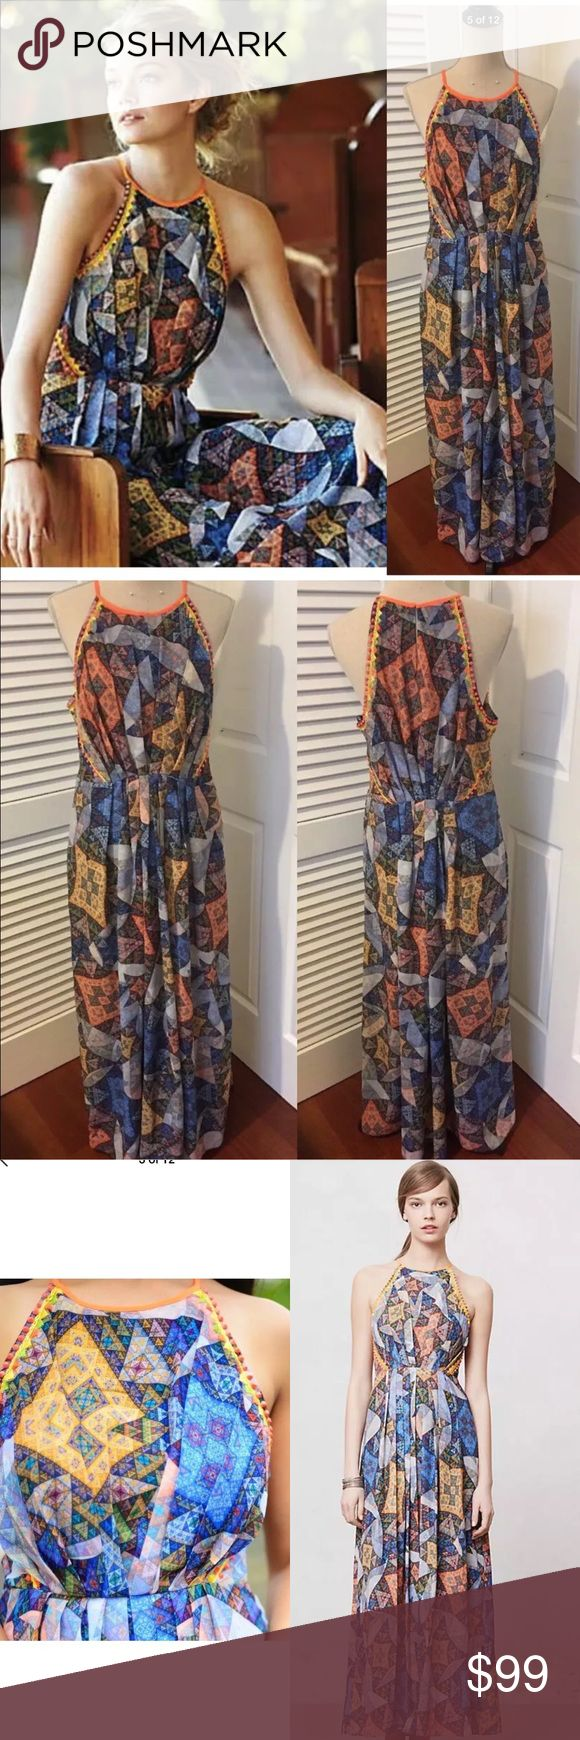 """ANTHROPOLOGIE Ranna Gill Condesa Maxi Dress Excellent condition!!! almost brand new As one of India's most famed designers, Ranna Gill crafts clothing and jewelry that is intricately constructed and full of ingenious color combinations and material mixes. Complete with beautiful beading, this floor-sweeping maxi is pure summer elegance; we love it with beaded sandals and a statement cuff. By Ranna Gill Side zip Polyester; polyester lining Laying Flat:  Length 57"""" from shoulder, armpit to…"""